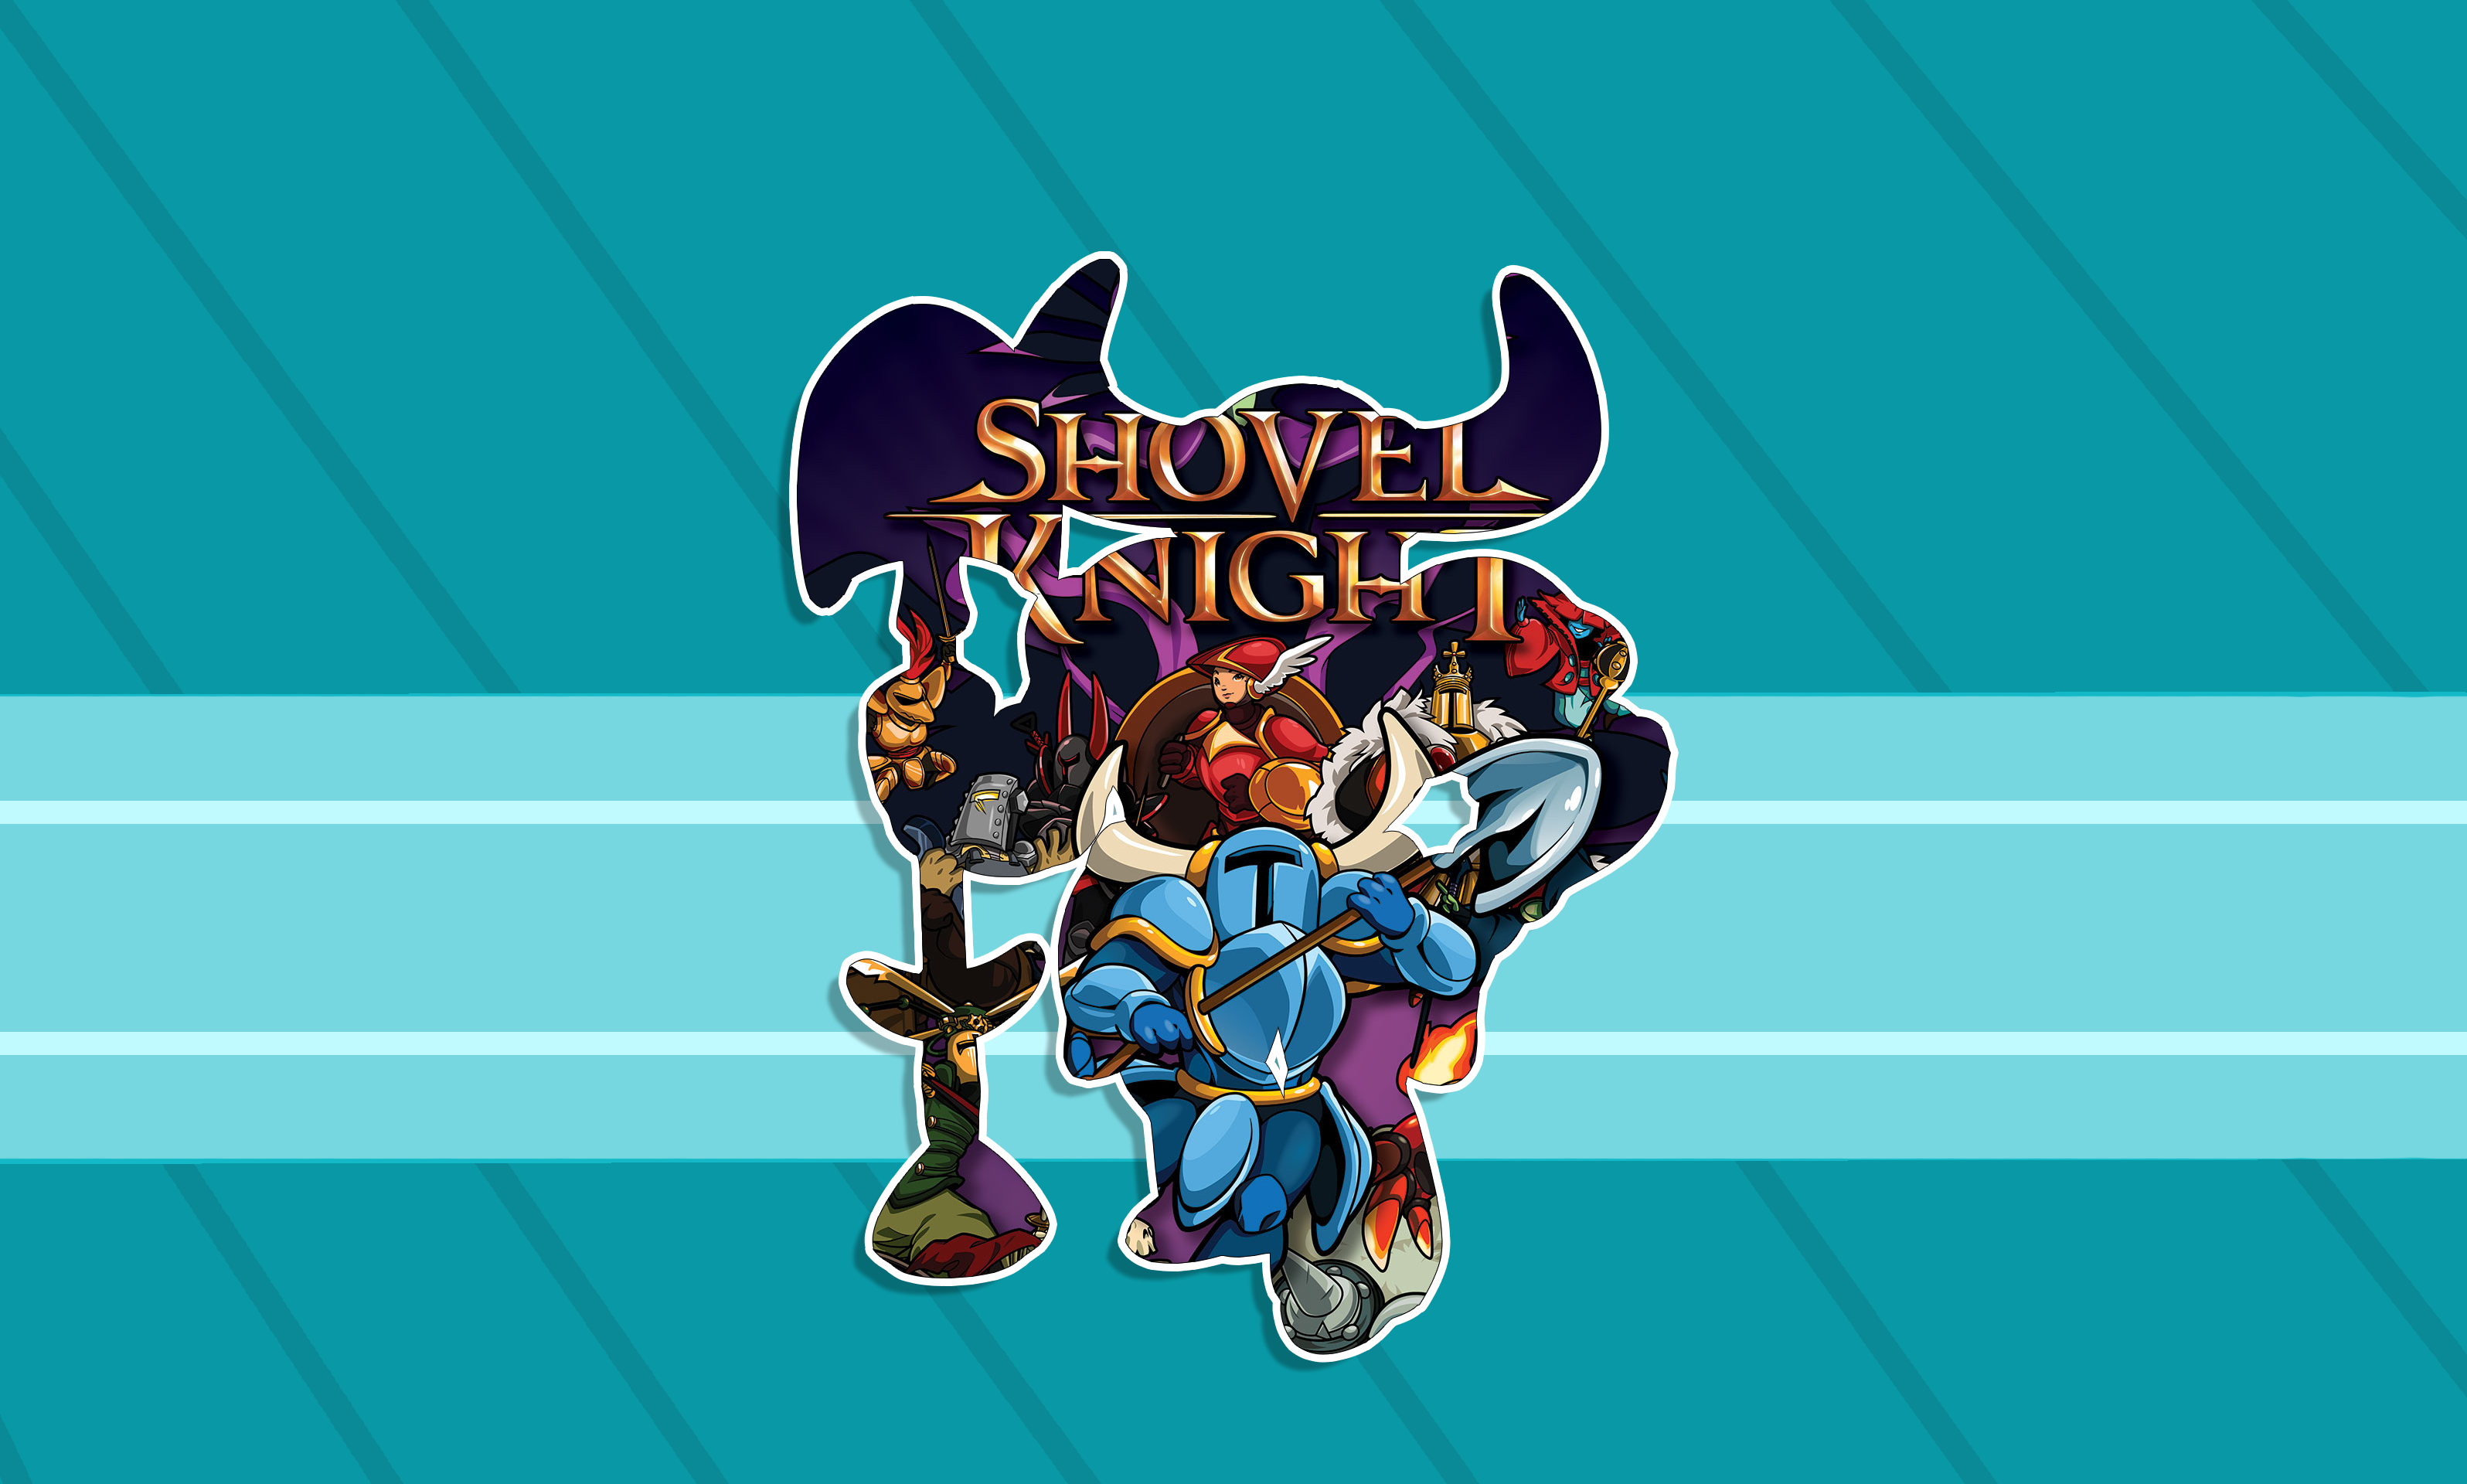 Shovel Knight Wallpapers Top Free Shovel Knight Backgrounds